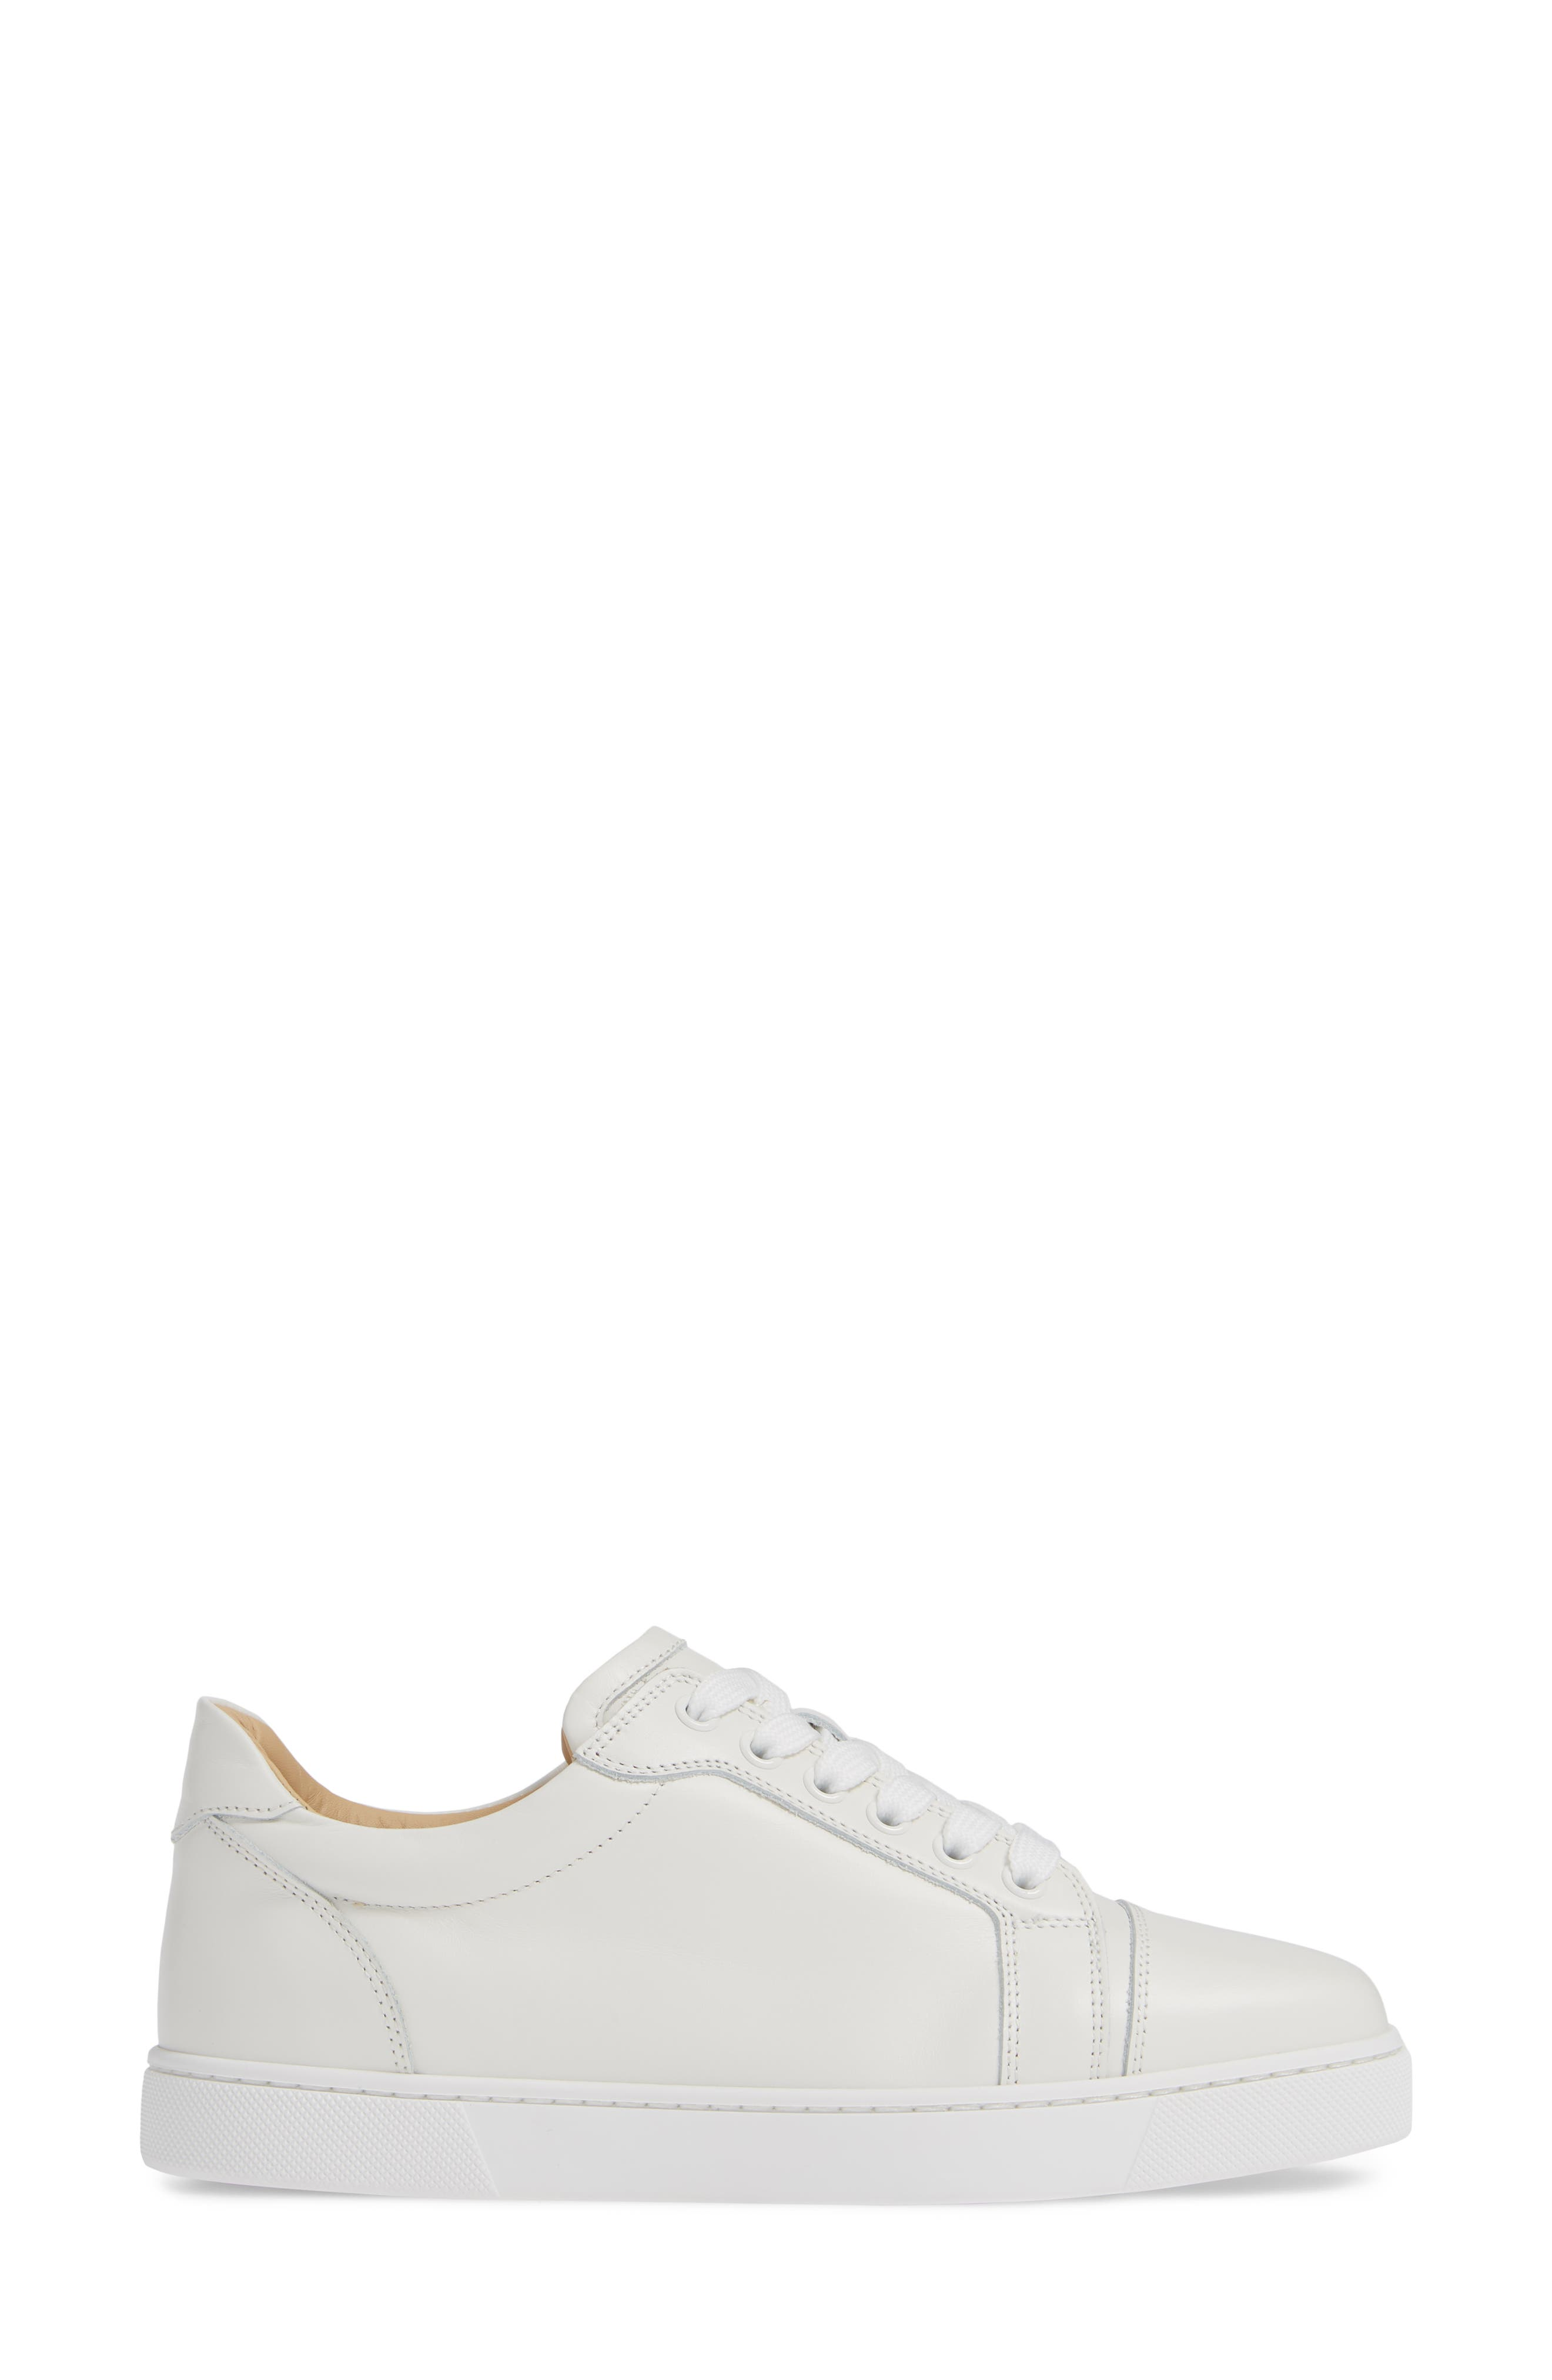 Veira Lace-Up Sneaker,                             Alternate thumbnail 3, color,                             SNOW WHITE